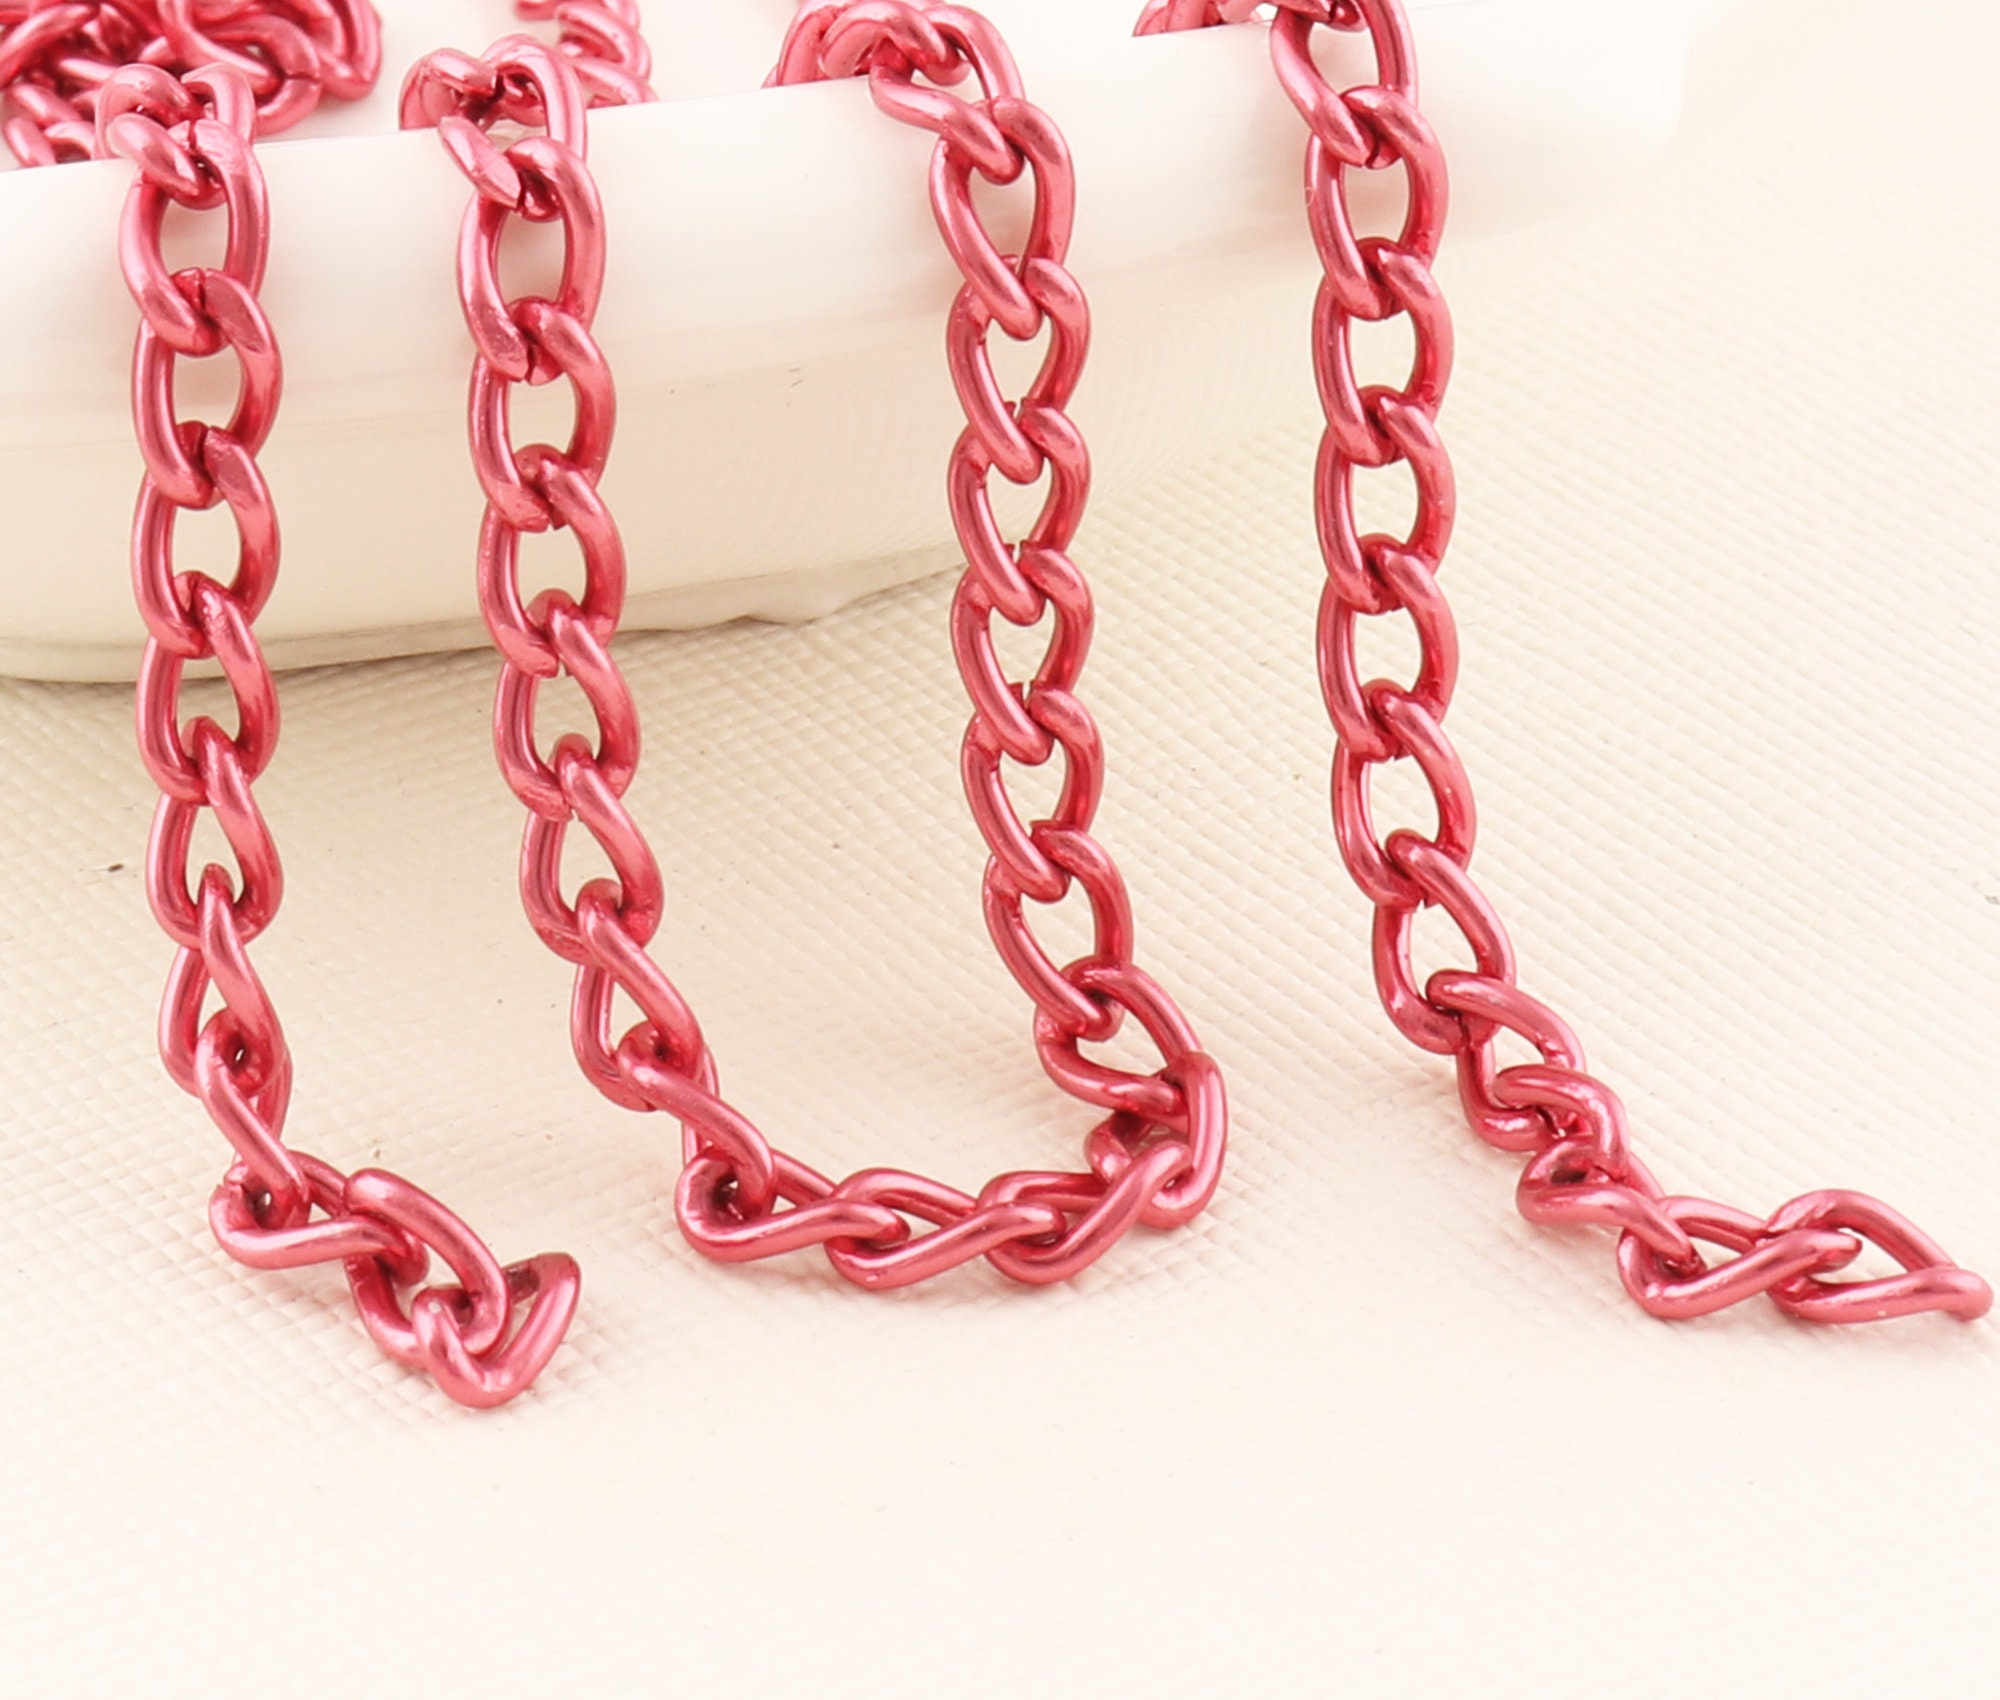 5 FEET Purse Replacement Chains Red bag chain Wallet ch